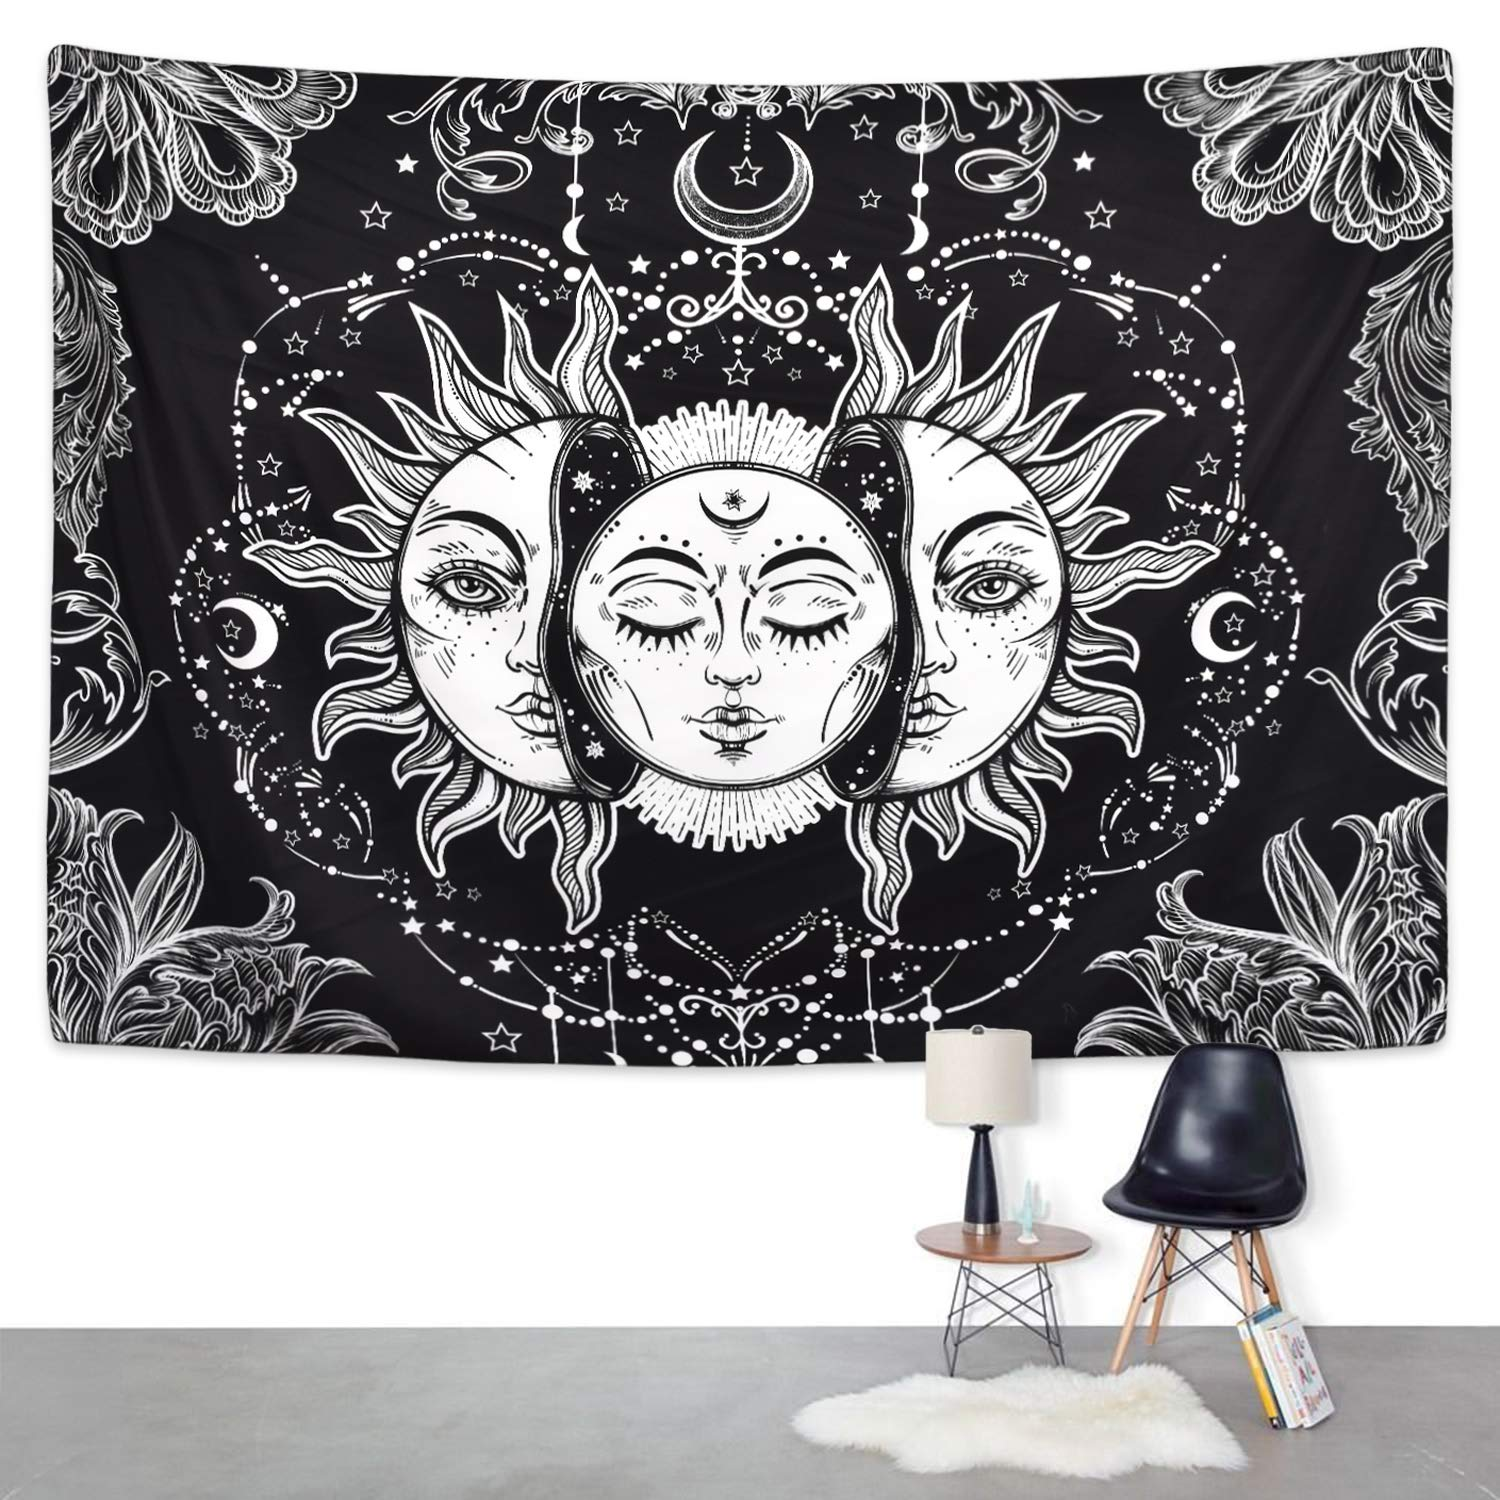 2019 New Polyester Tarpaulin Tapestry Rectangle Wall-Mounted Blanket European Style Home Decoration Hot